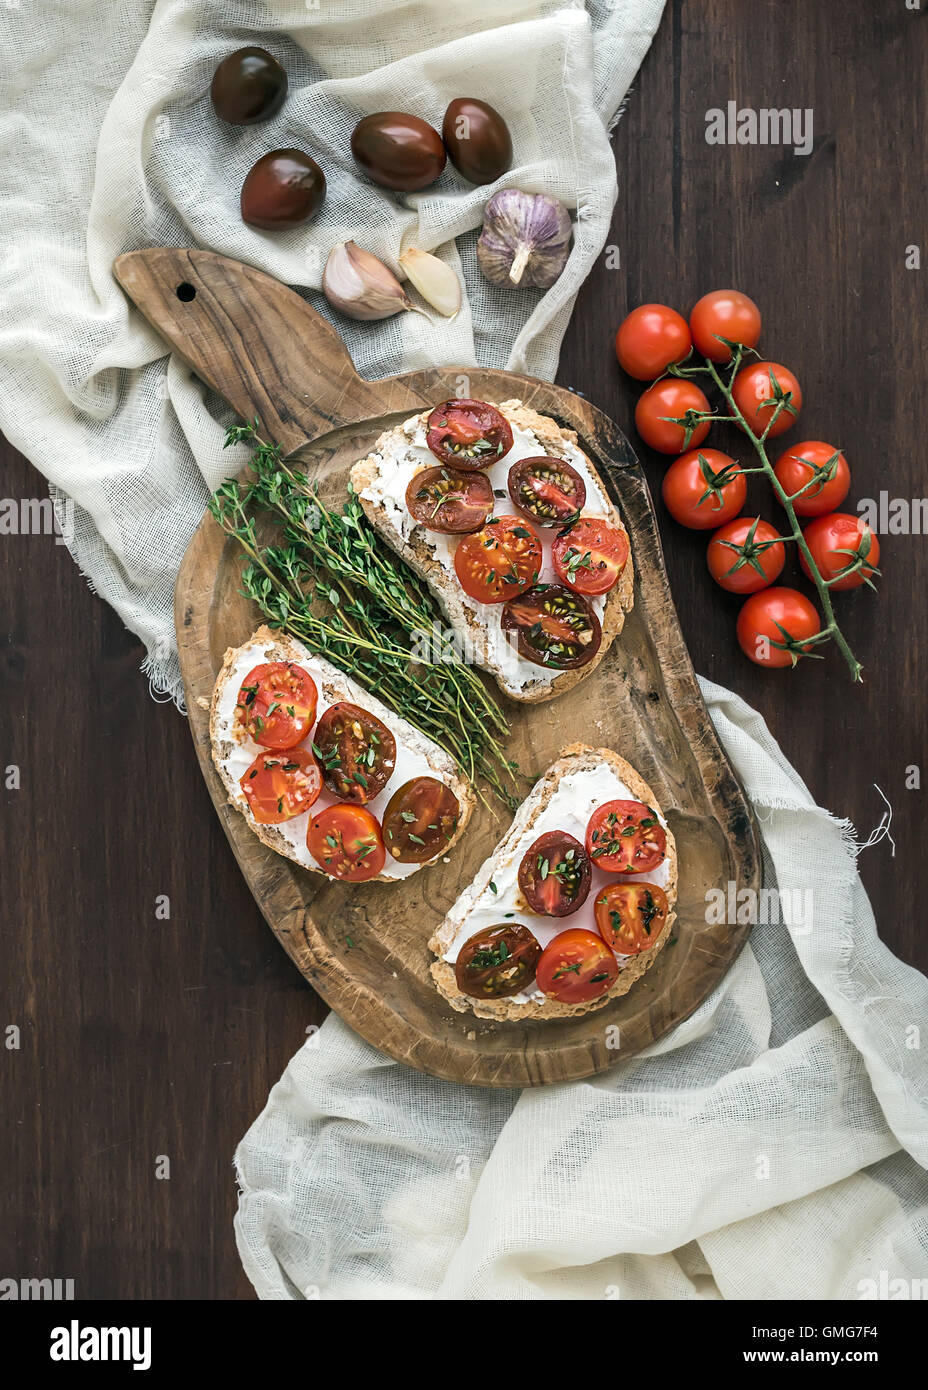 Sandwiches brushtta with roasted cherry tomatoes, soft cheese - Stock Image